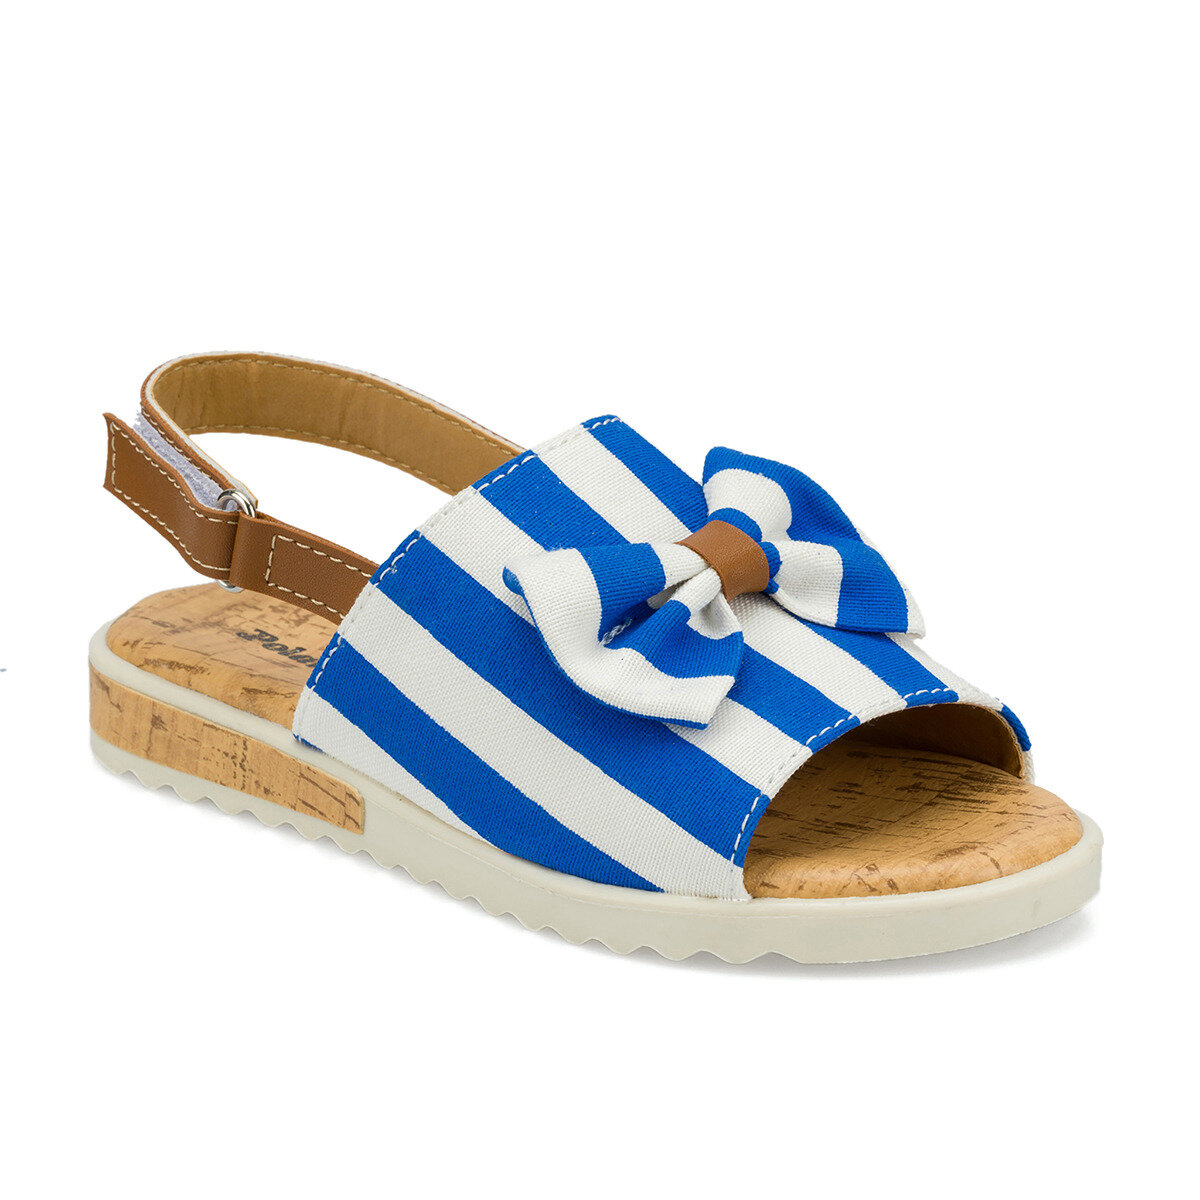 FLO 512481.F Blue Girl Child Sandals Polaris